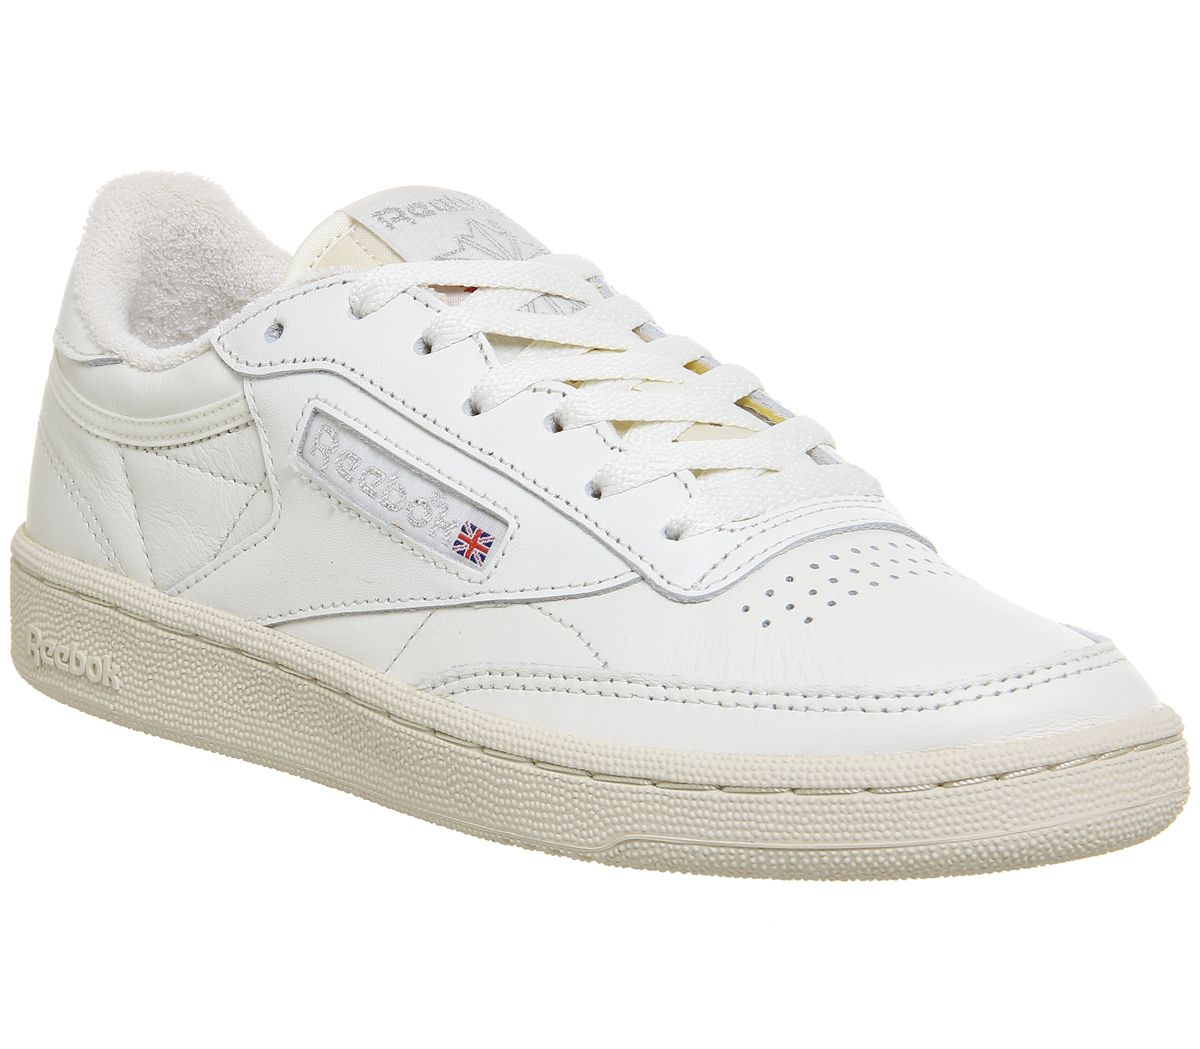 5923c6ad28ca0 Reebok Club C 85 Chalk Silver Vintage - Hers trainers